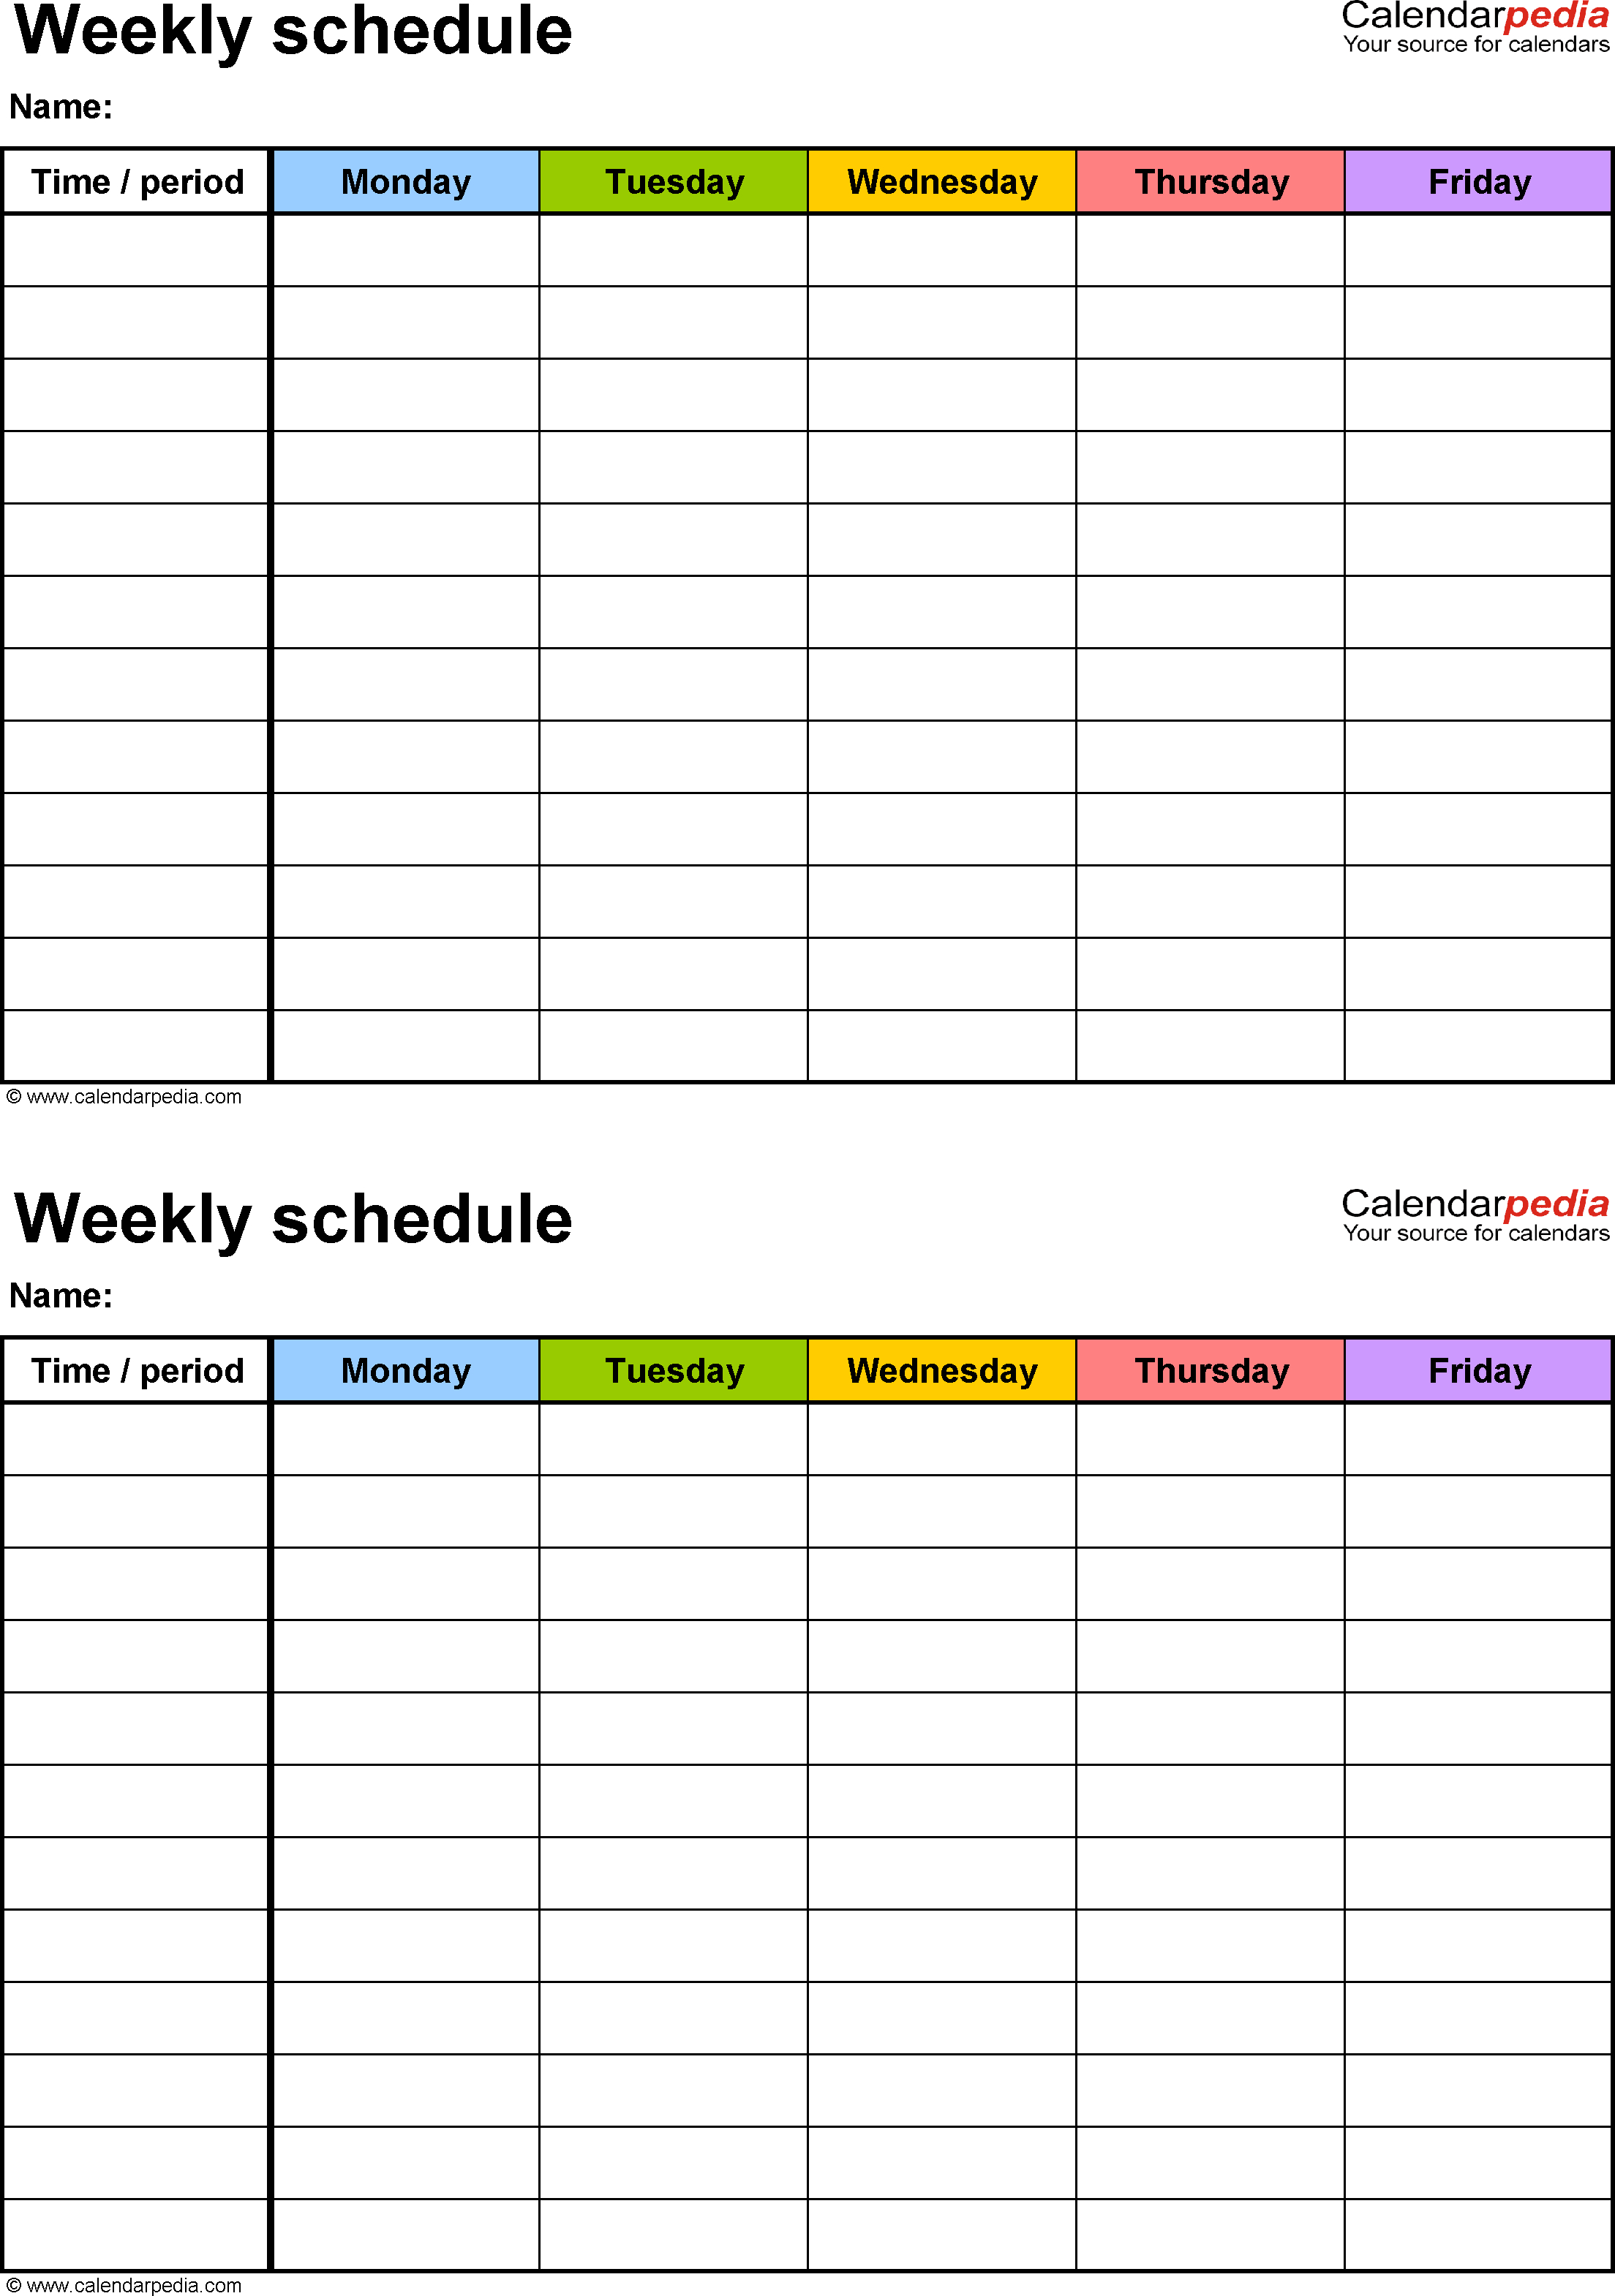 Free Weekly Schedule Templates For Word - 18 Templates regarding Blank Weekly Calendar Print Outs